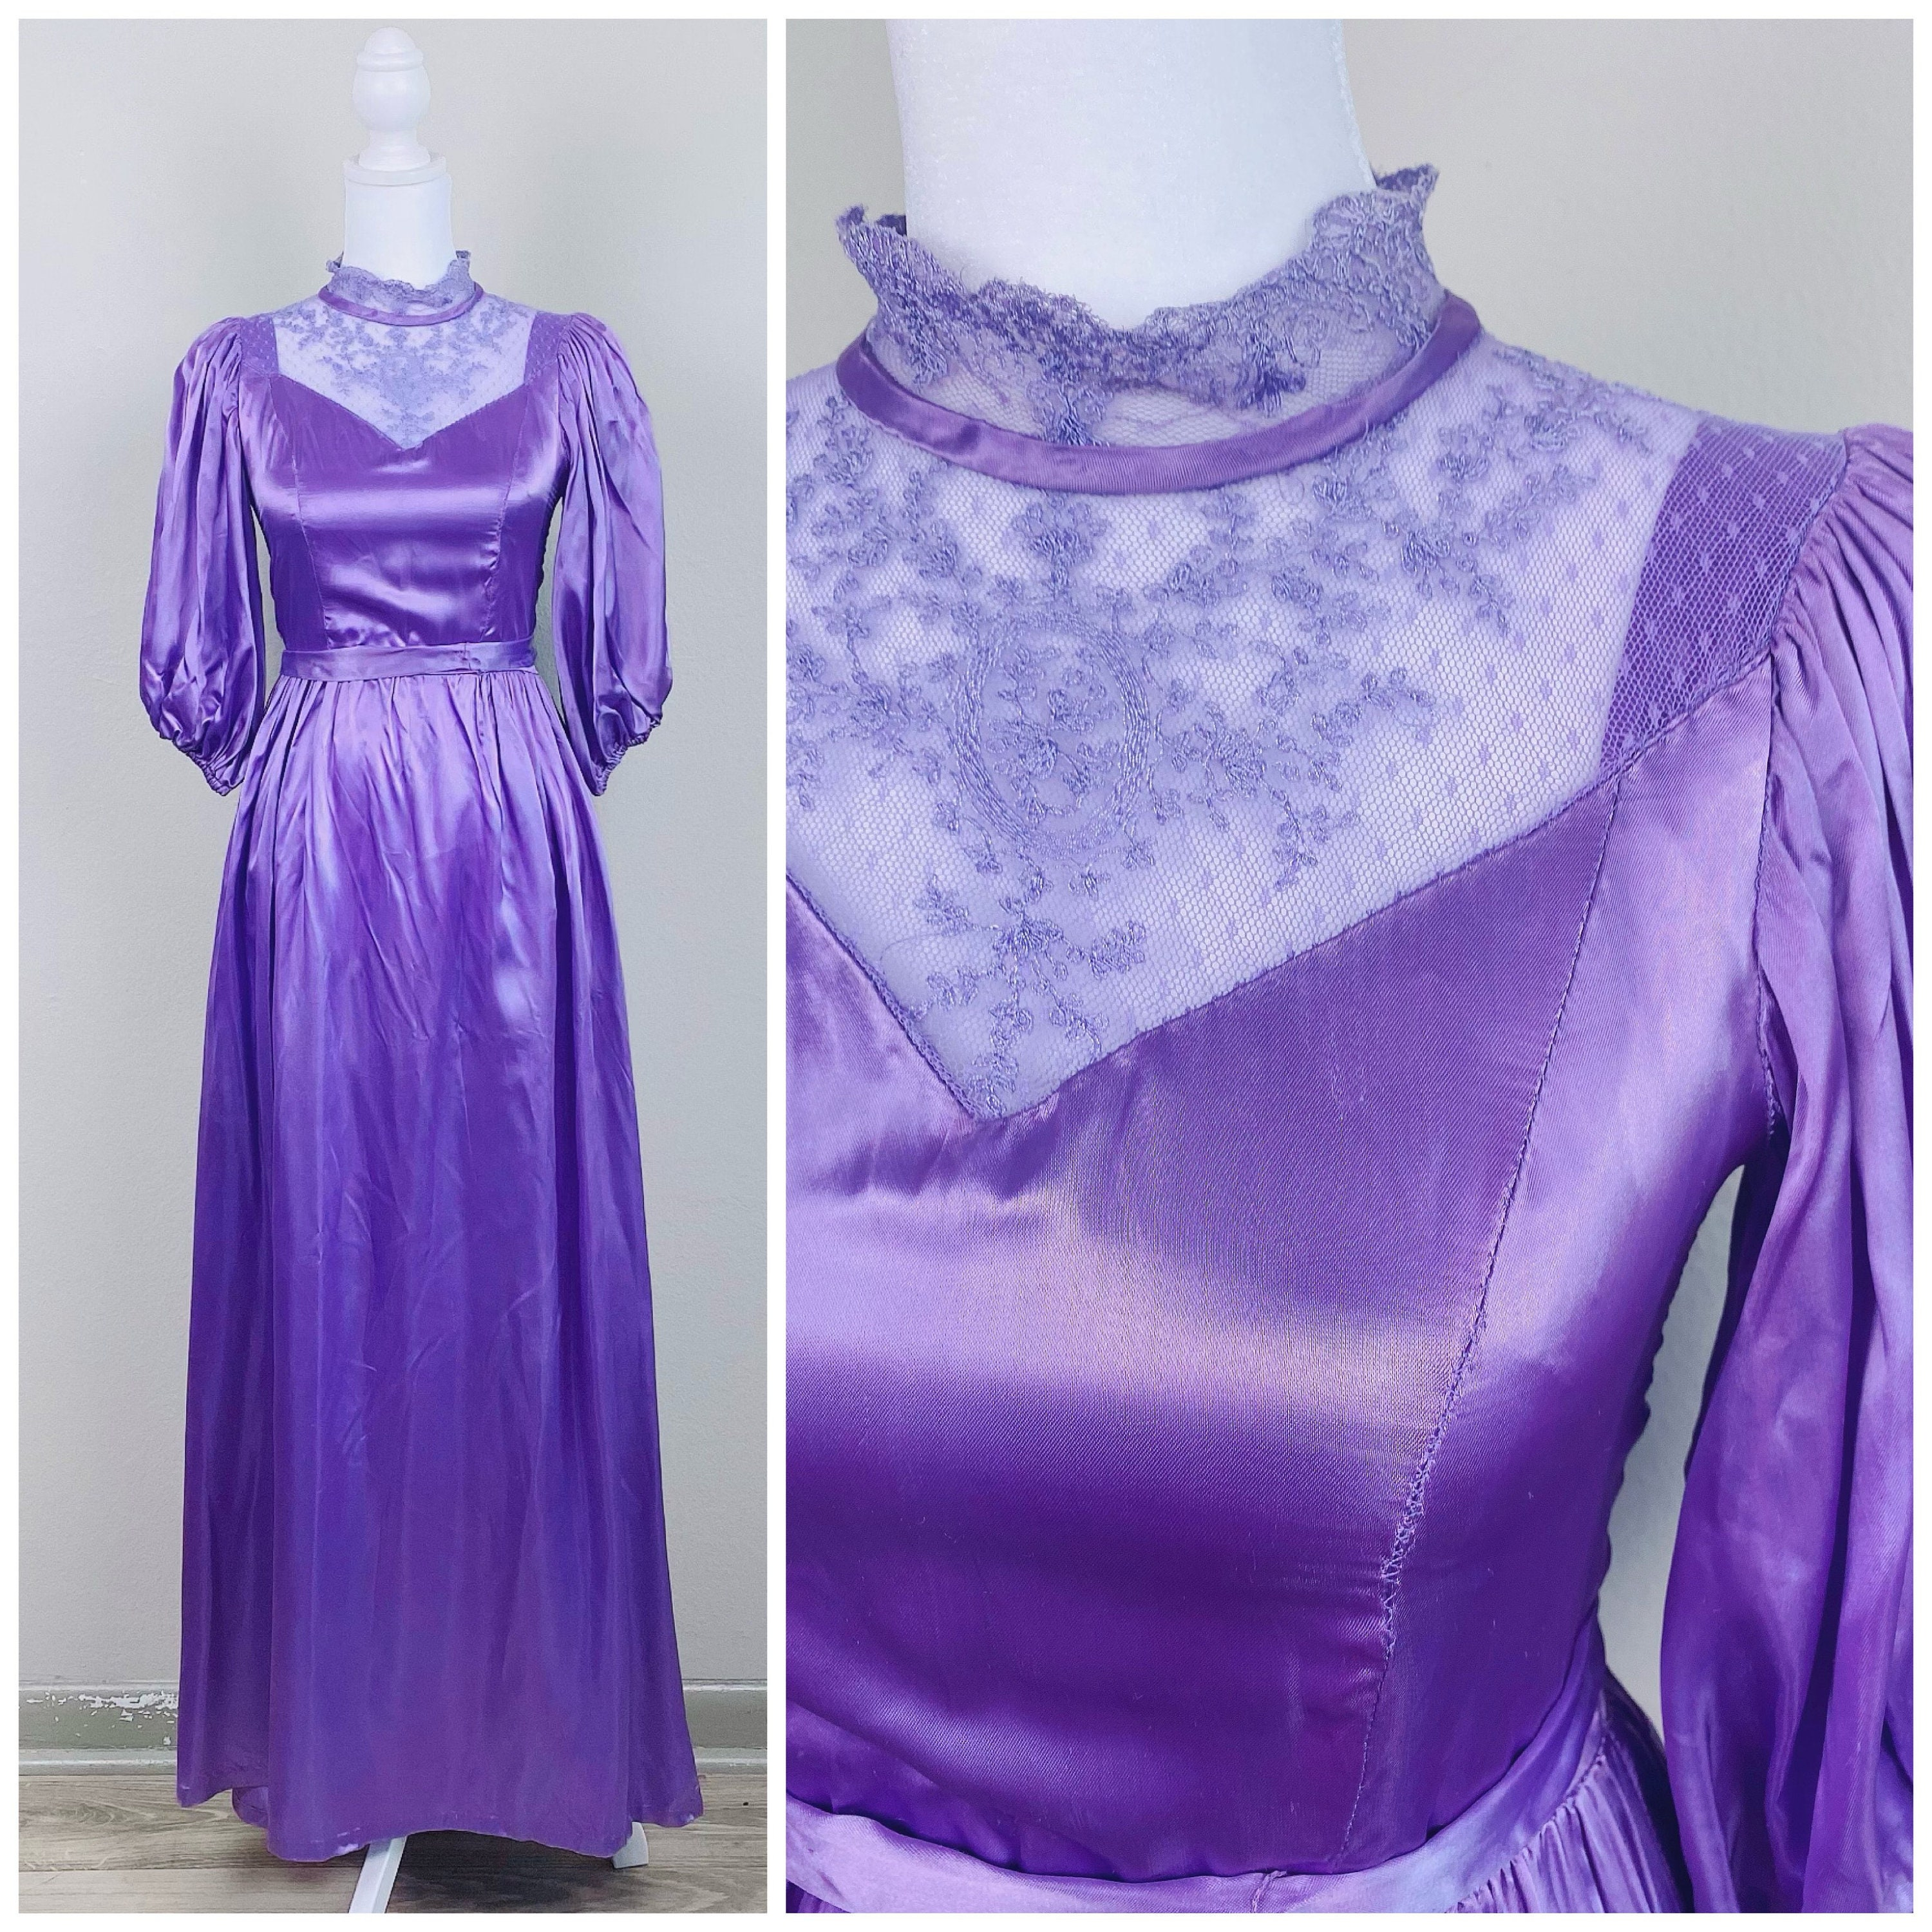 80s Dresses | Casual to Party Dresses 1980S Vintage Purple Liquid Satin Puffed Sleeve Gown80S Eighties Lace Collar High Neck Prairie Maxi Dress Size Extra Small $26.50 AT vintagedancer.com